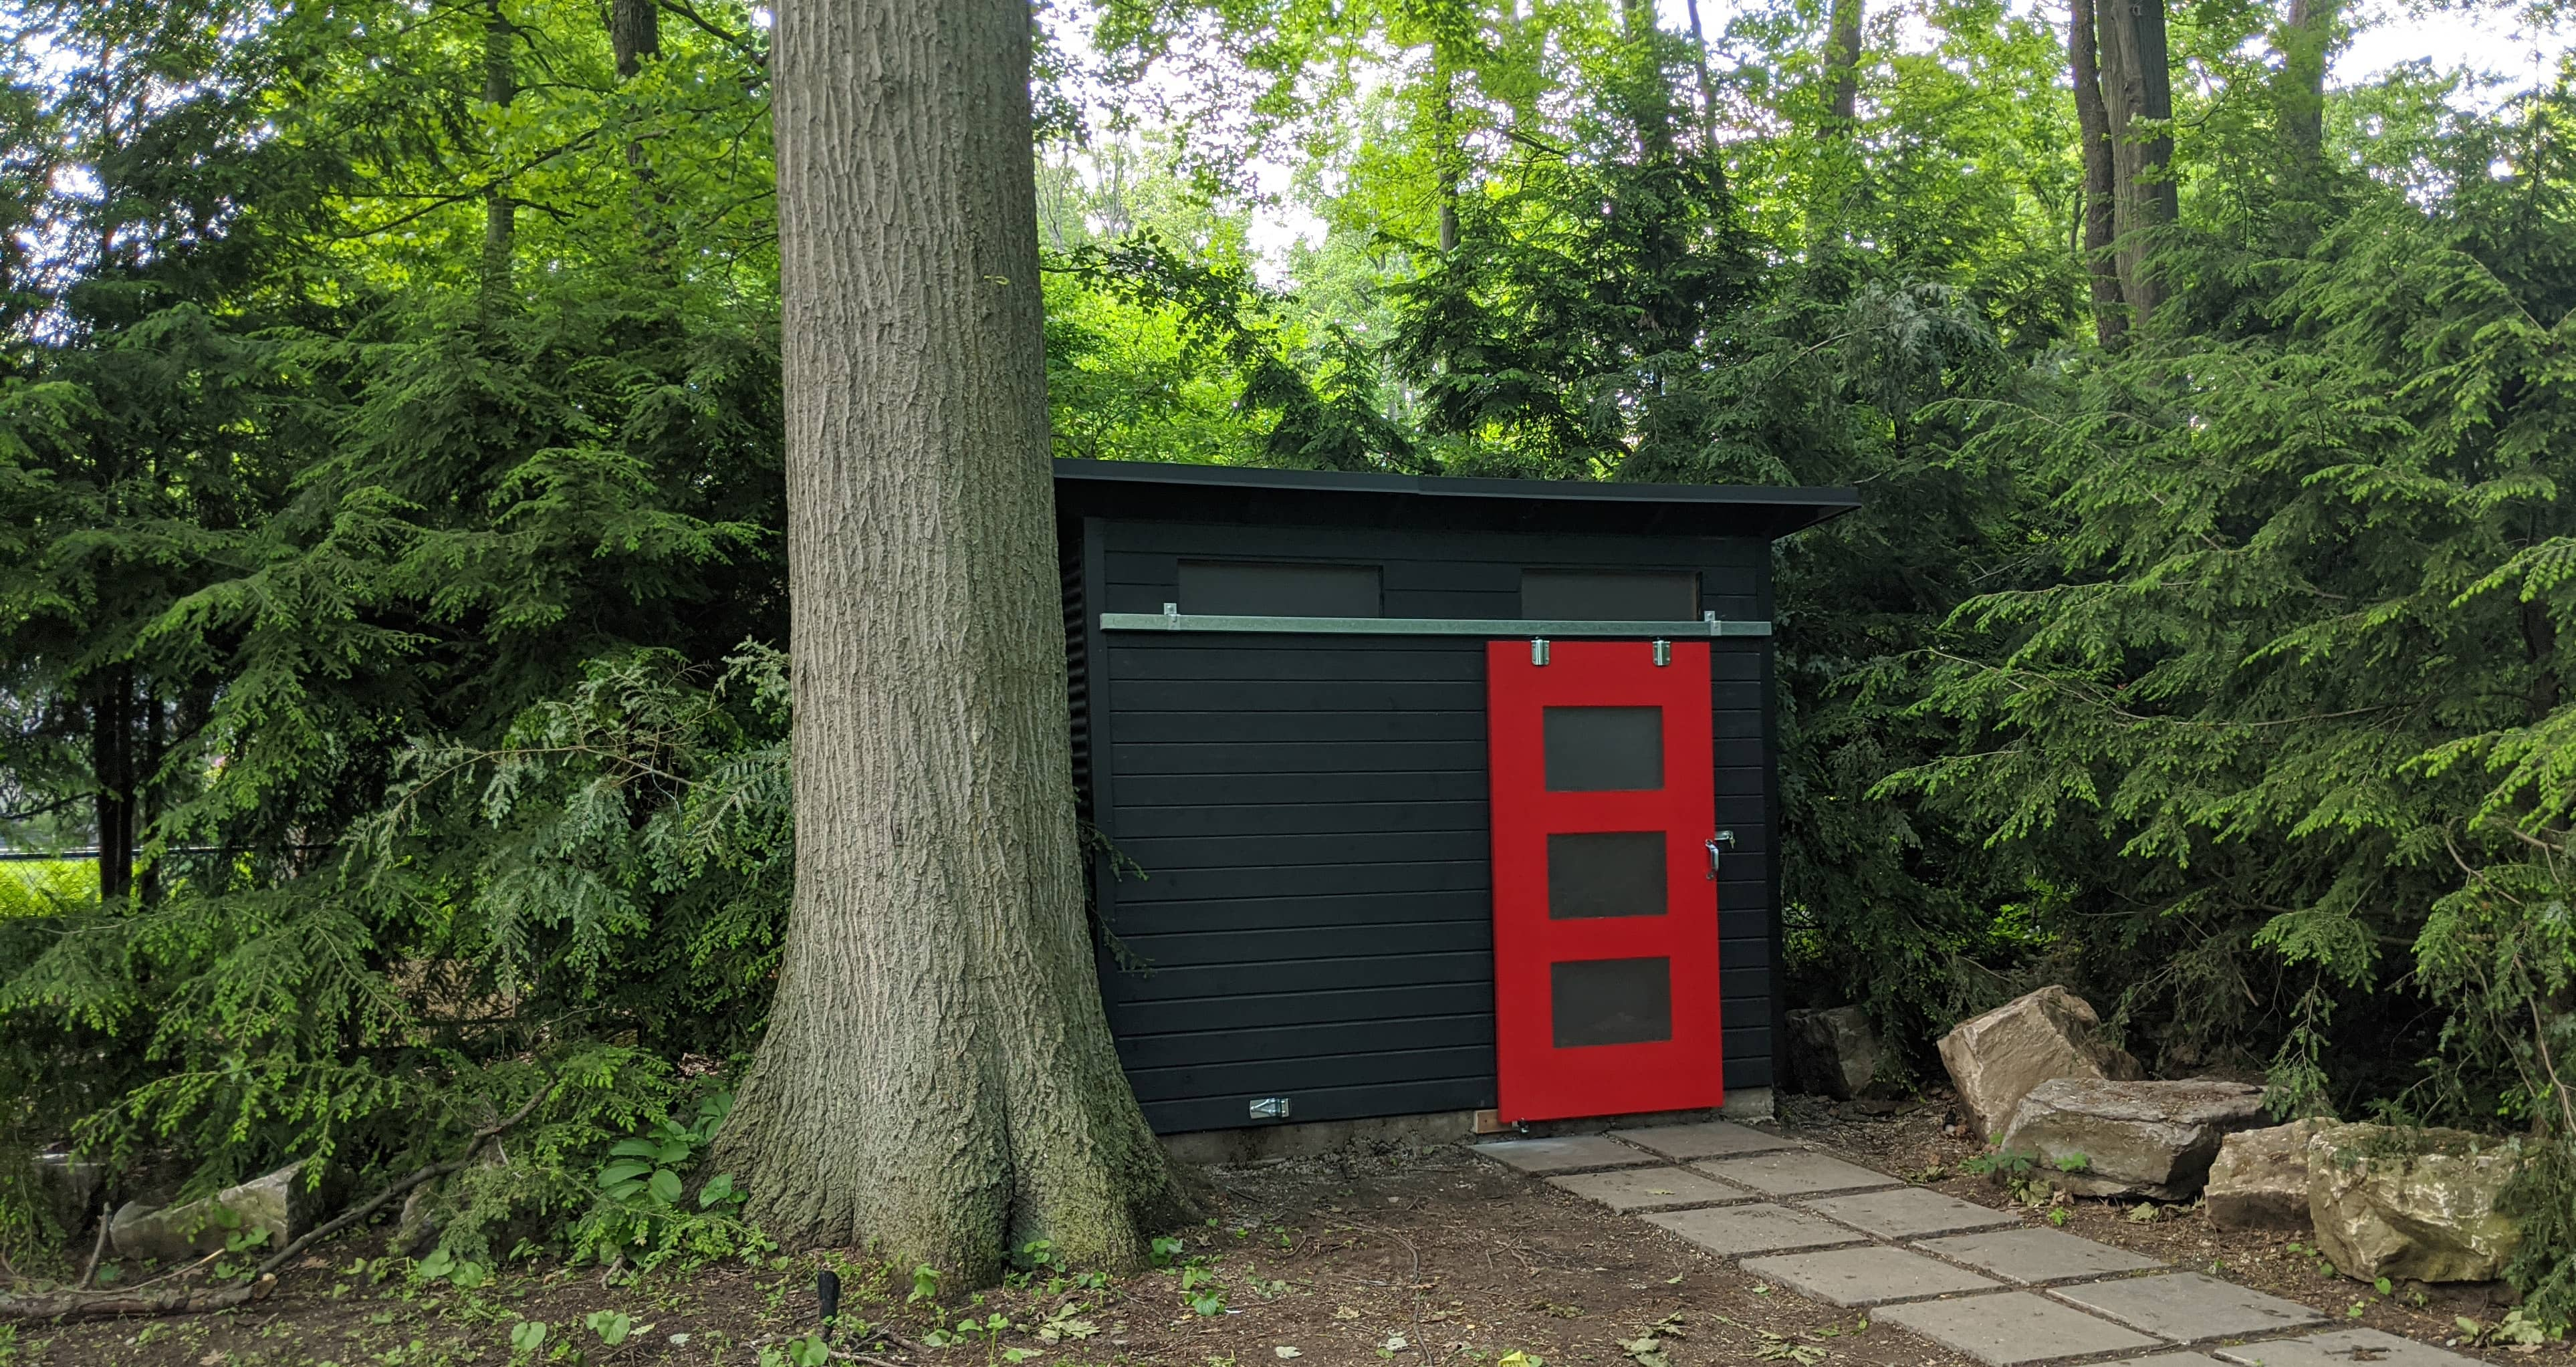 10' x 8' Advanced Shed with Black Beauty Stain and Jet Black Steel